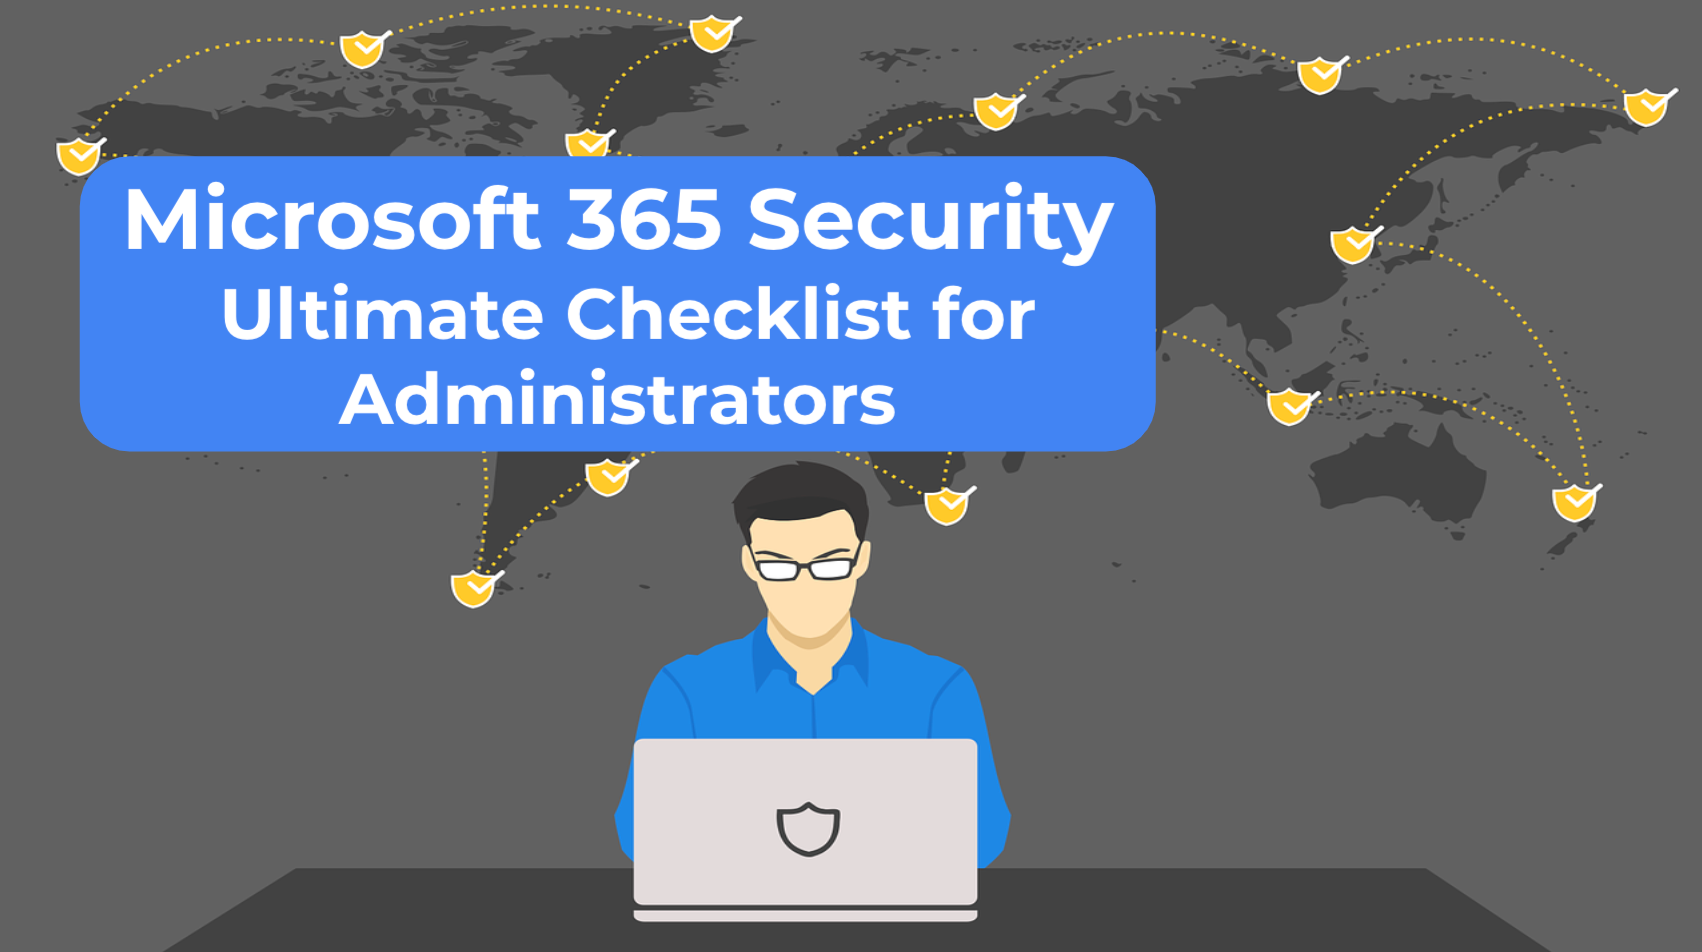 Microsoft 365 Security Ultimate Checklist for Administrators